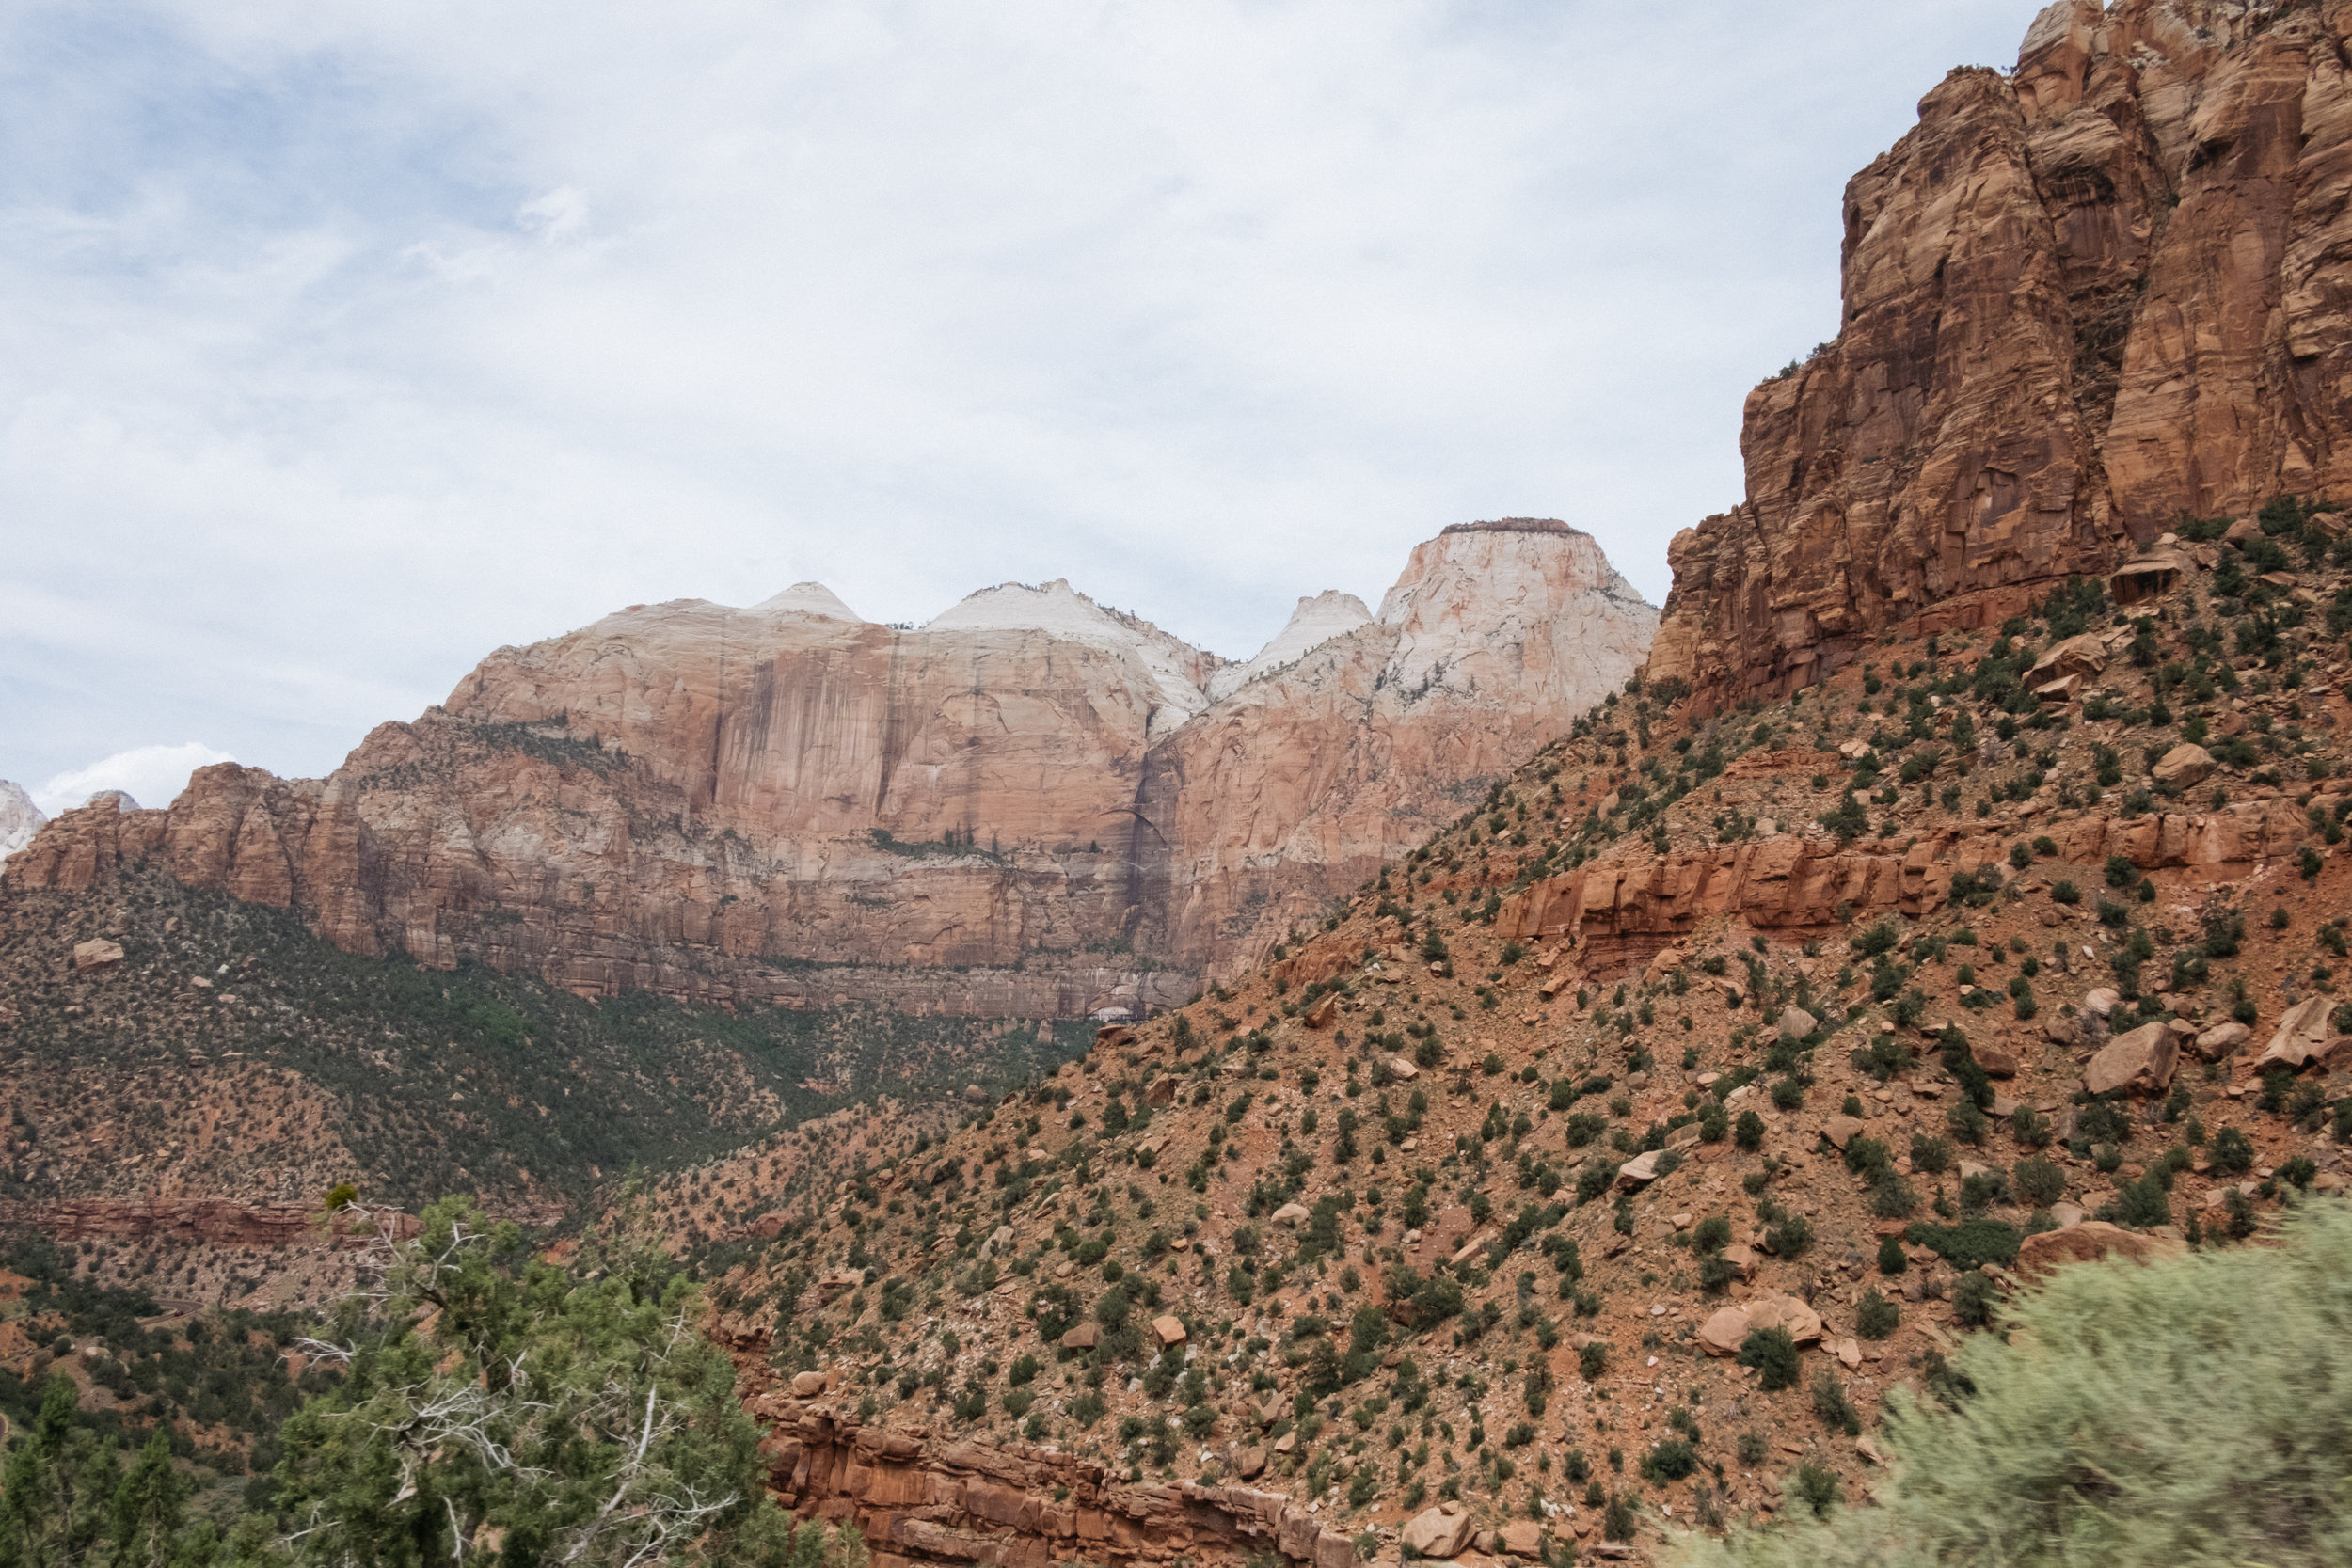 Viewpoint in Zion